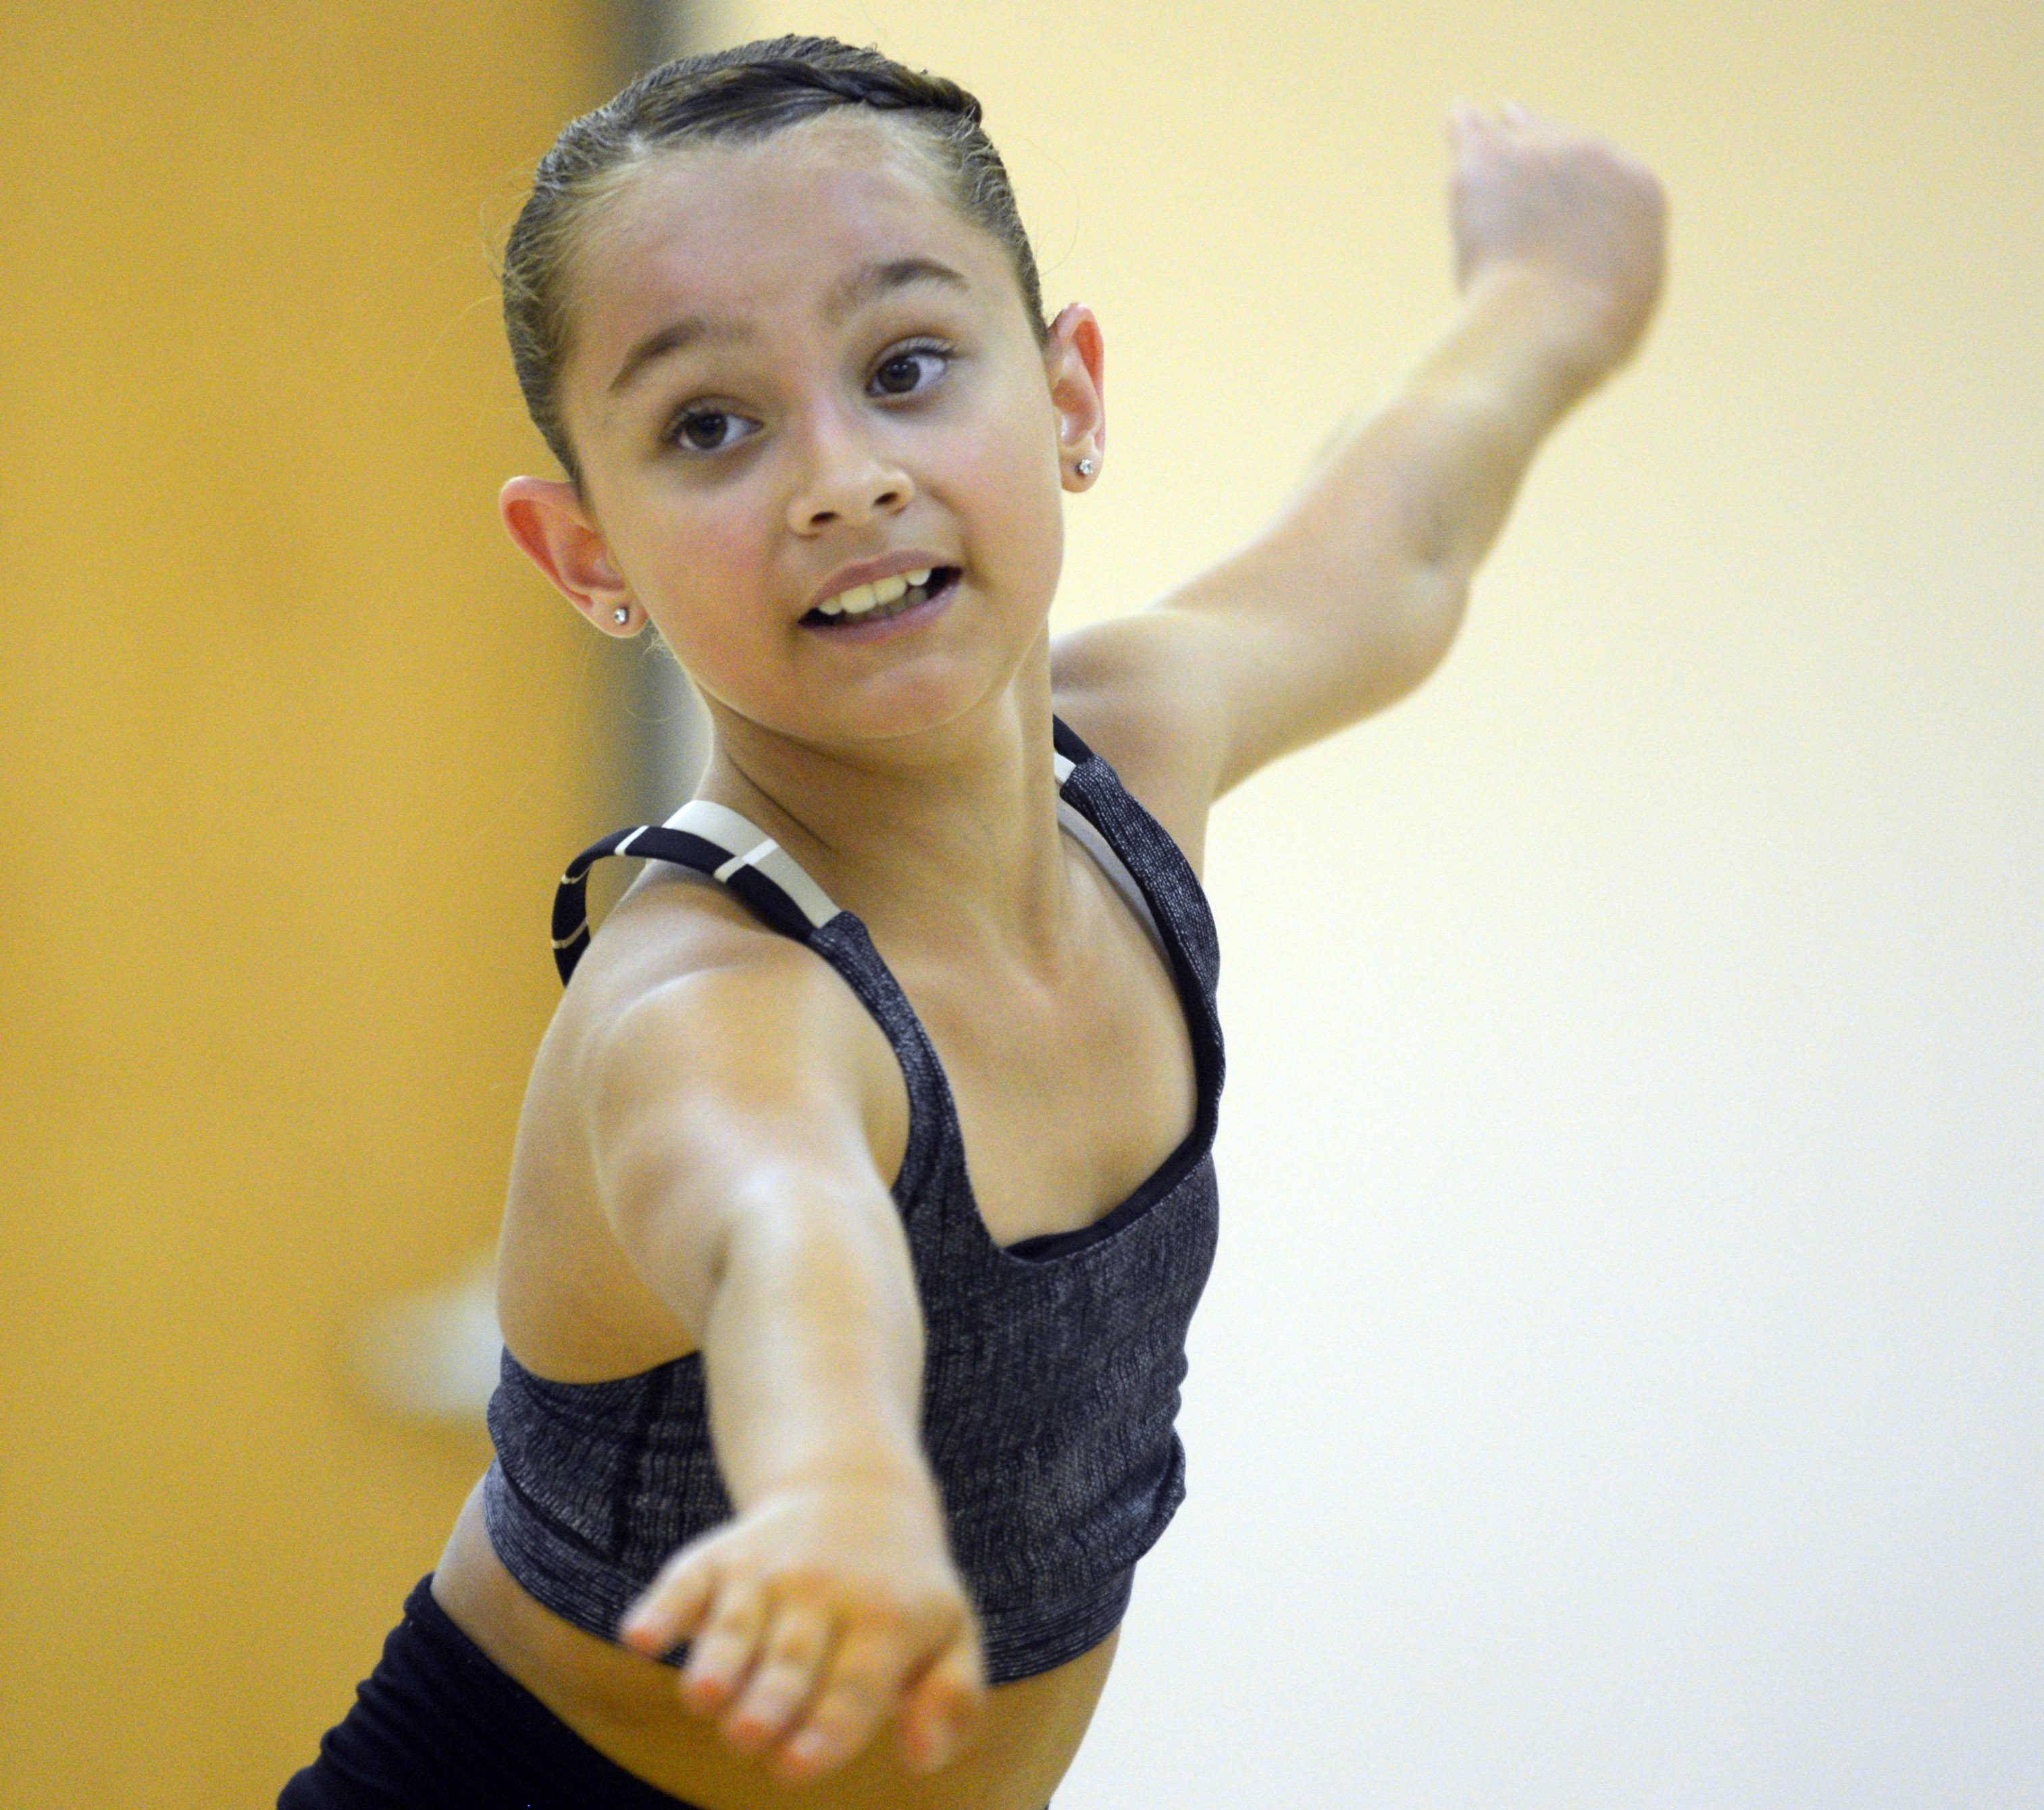 Brianne Cannataro of Schaumburg practices tap dancing at The Edge Dance Academy in Palatine. The 10-year-old from Schaumburg not only is among the best tap dancers in her age group in the country, but she's also a straight-A student at Buzz Aldrin Elementary School.